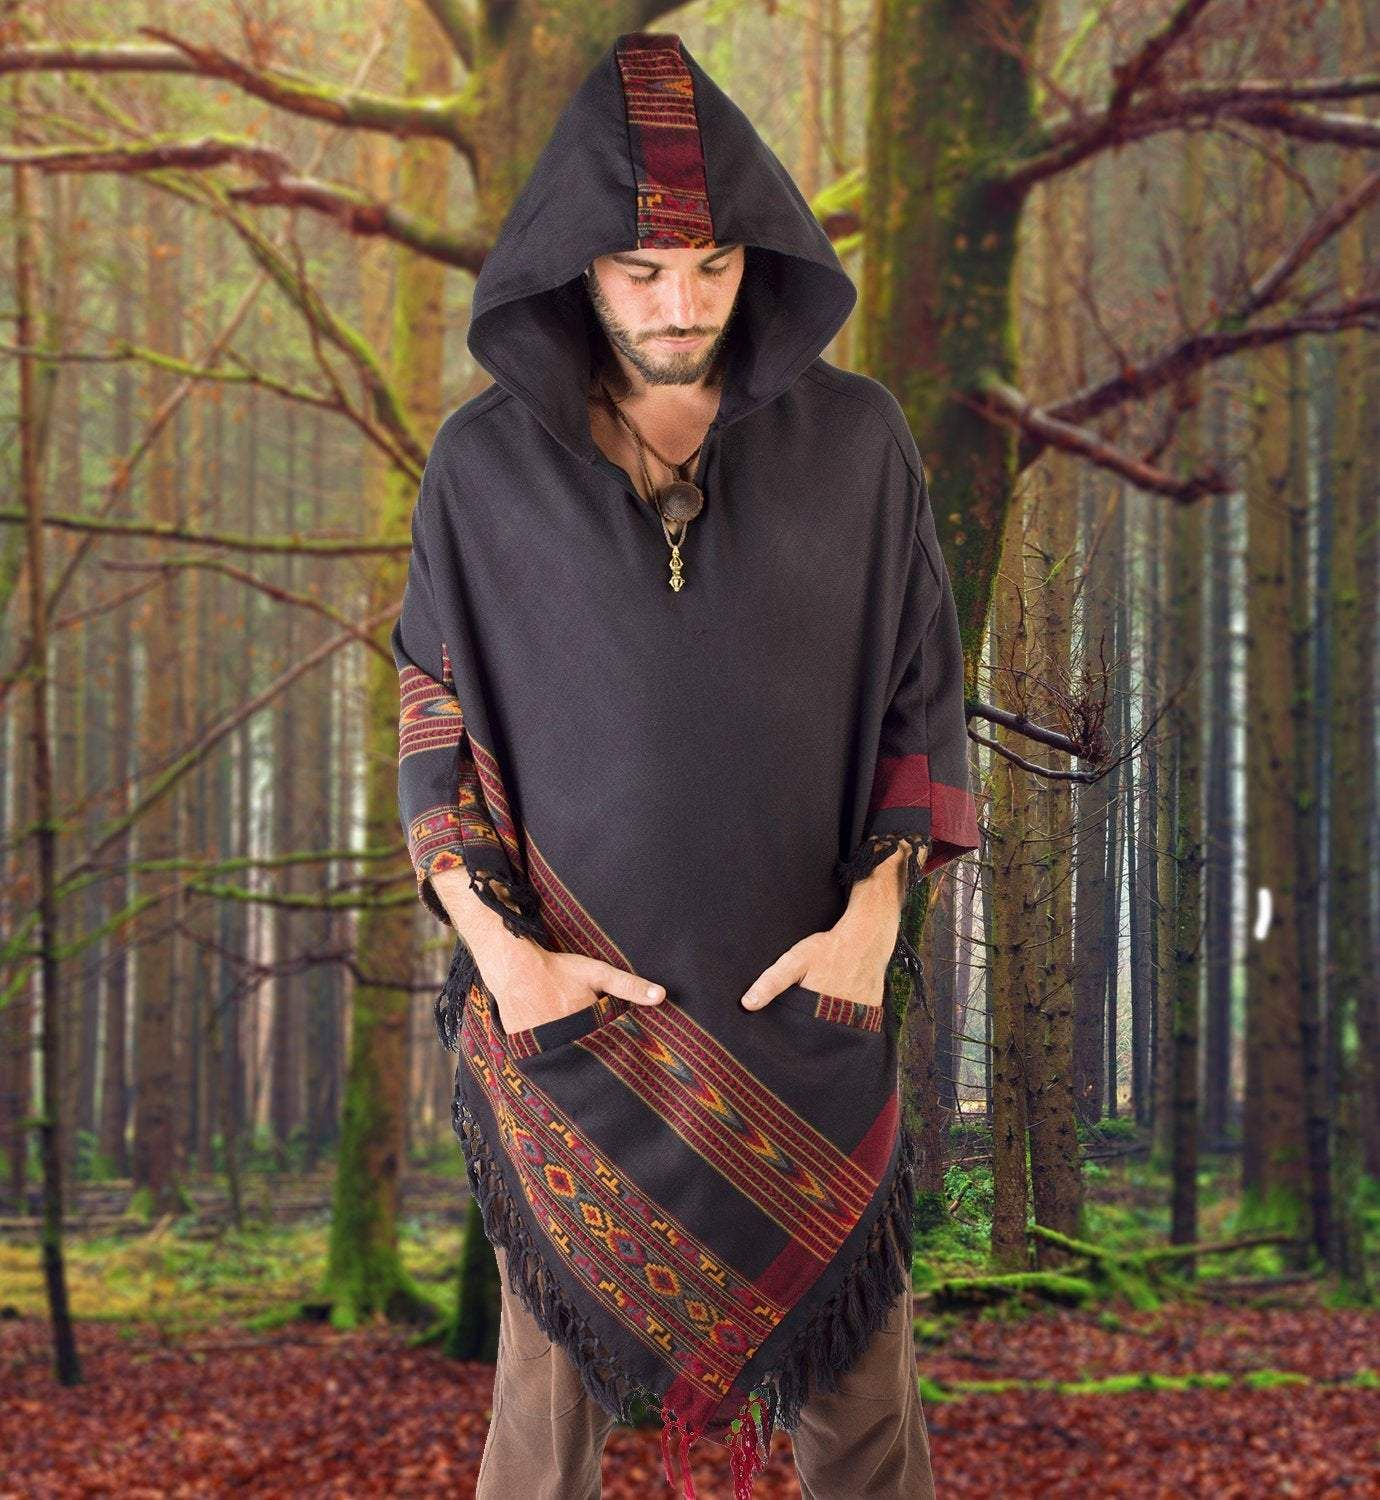 Handmade Poncho with Large Hood Brown YAK Cashmere Wool Earthy Tribal Pattern